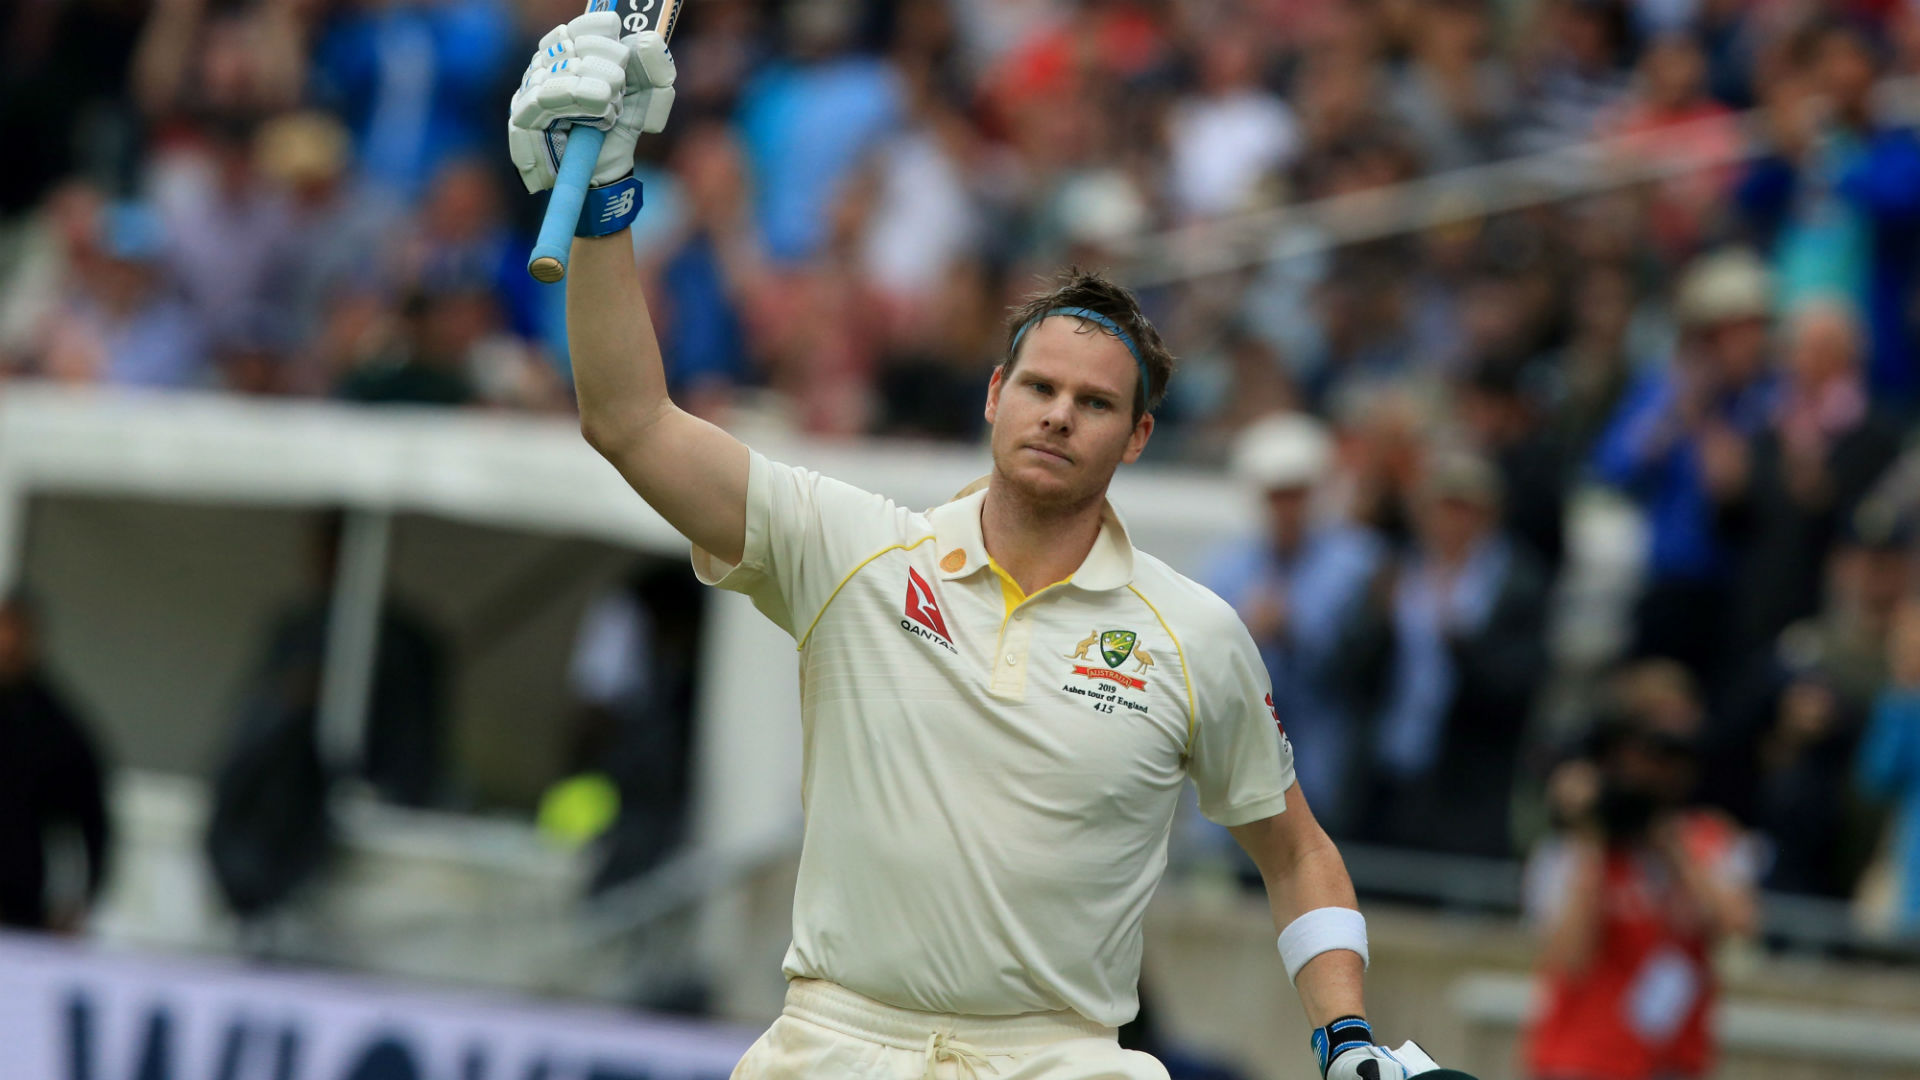 Ashes 2019: Australia star Smith joins elite group with back-to-back centuries in England